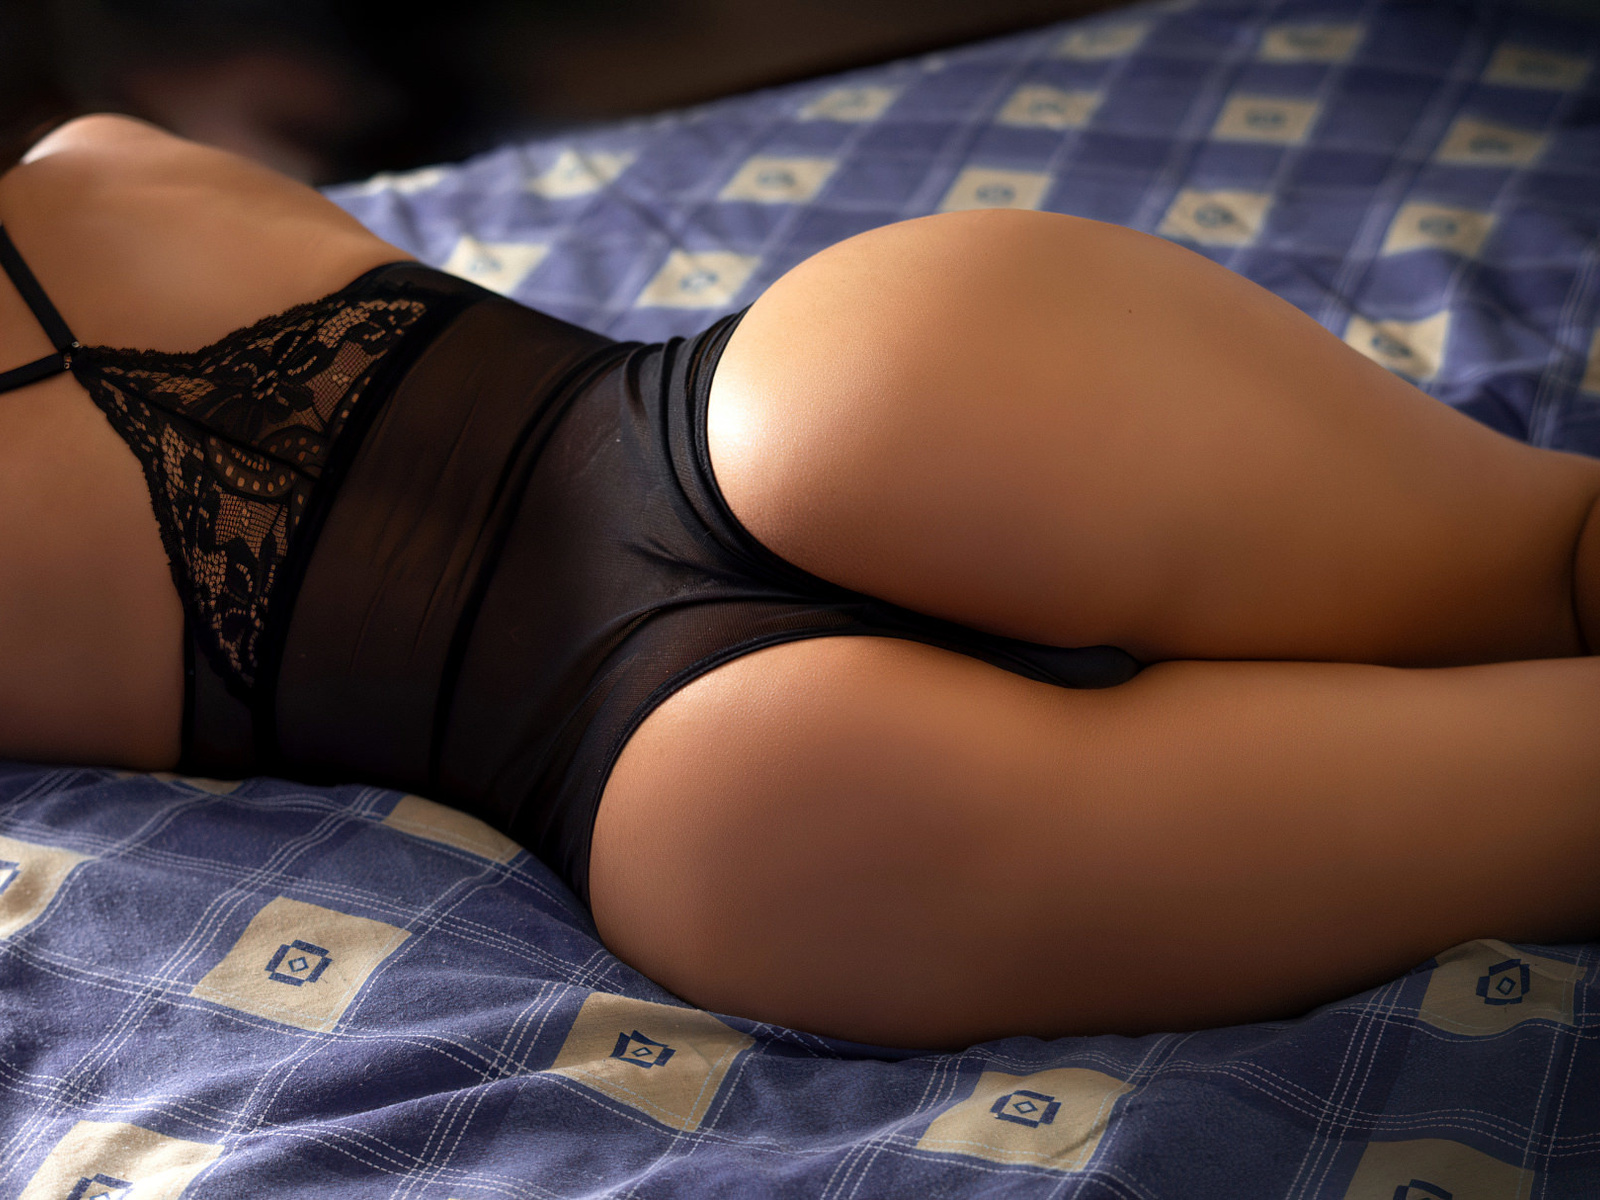 women, ass, brunette, back, in bed, bodysuit, women indoors, black lingerie